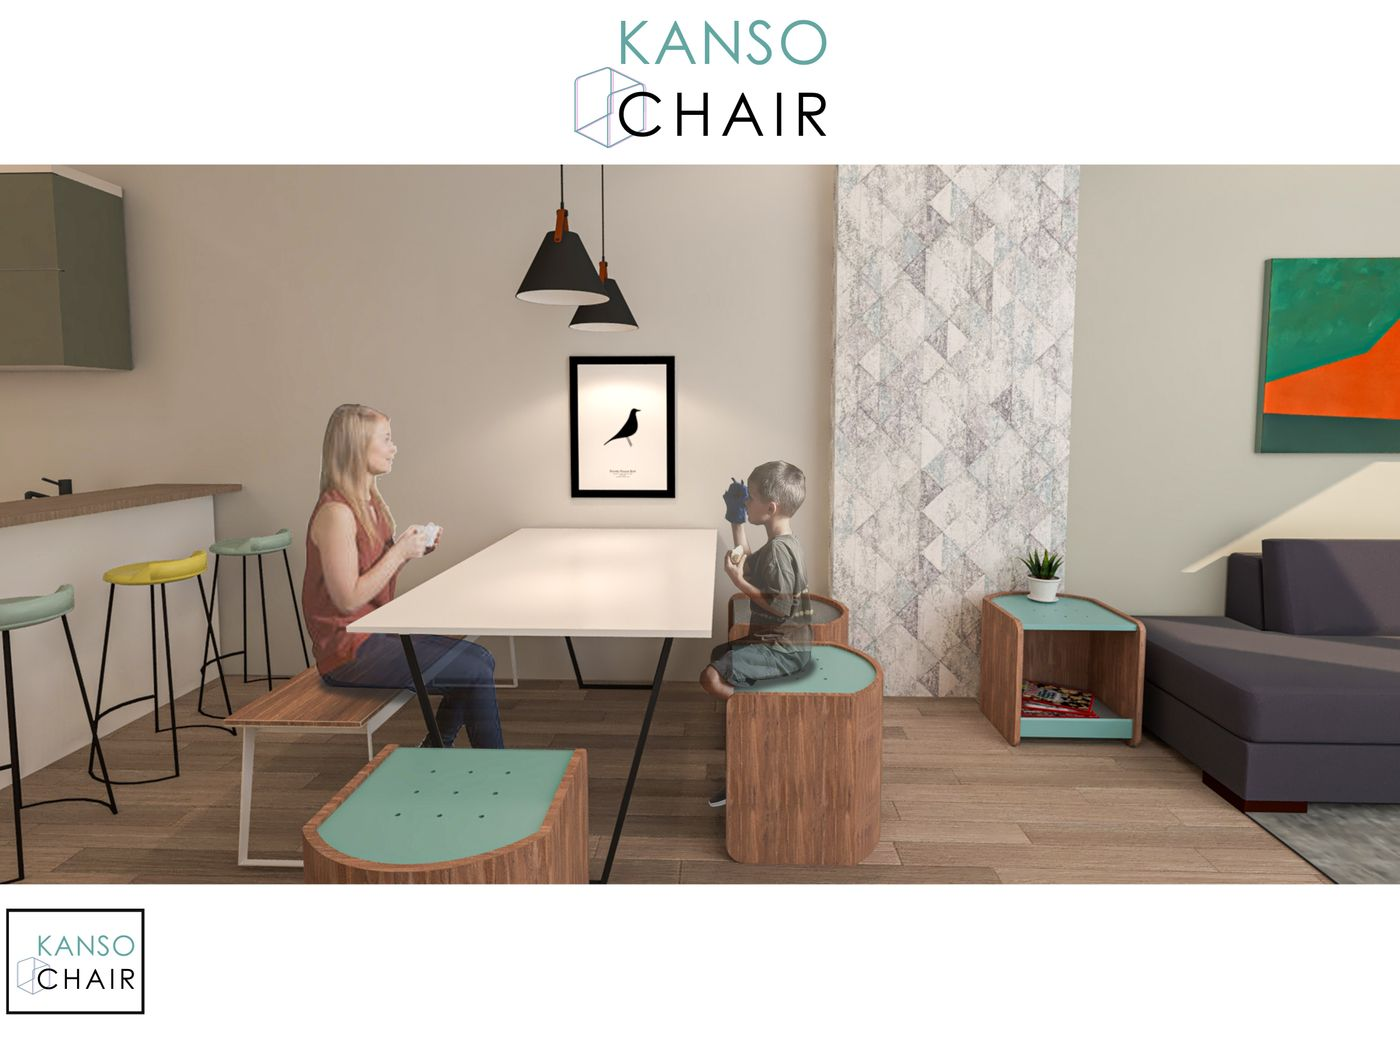 Kanso Chair : A multifunctional chair